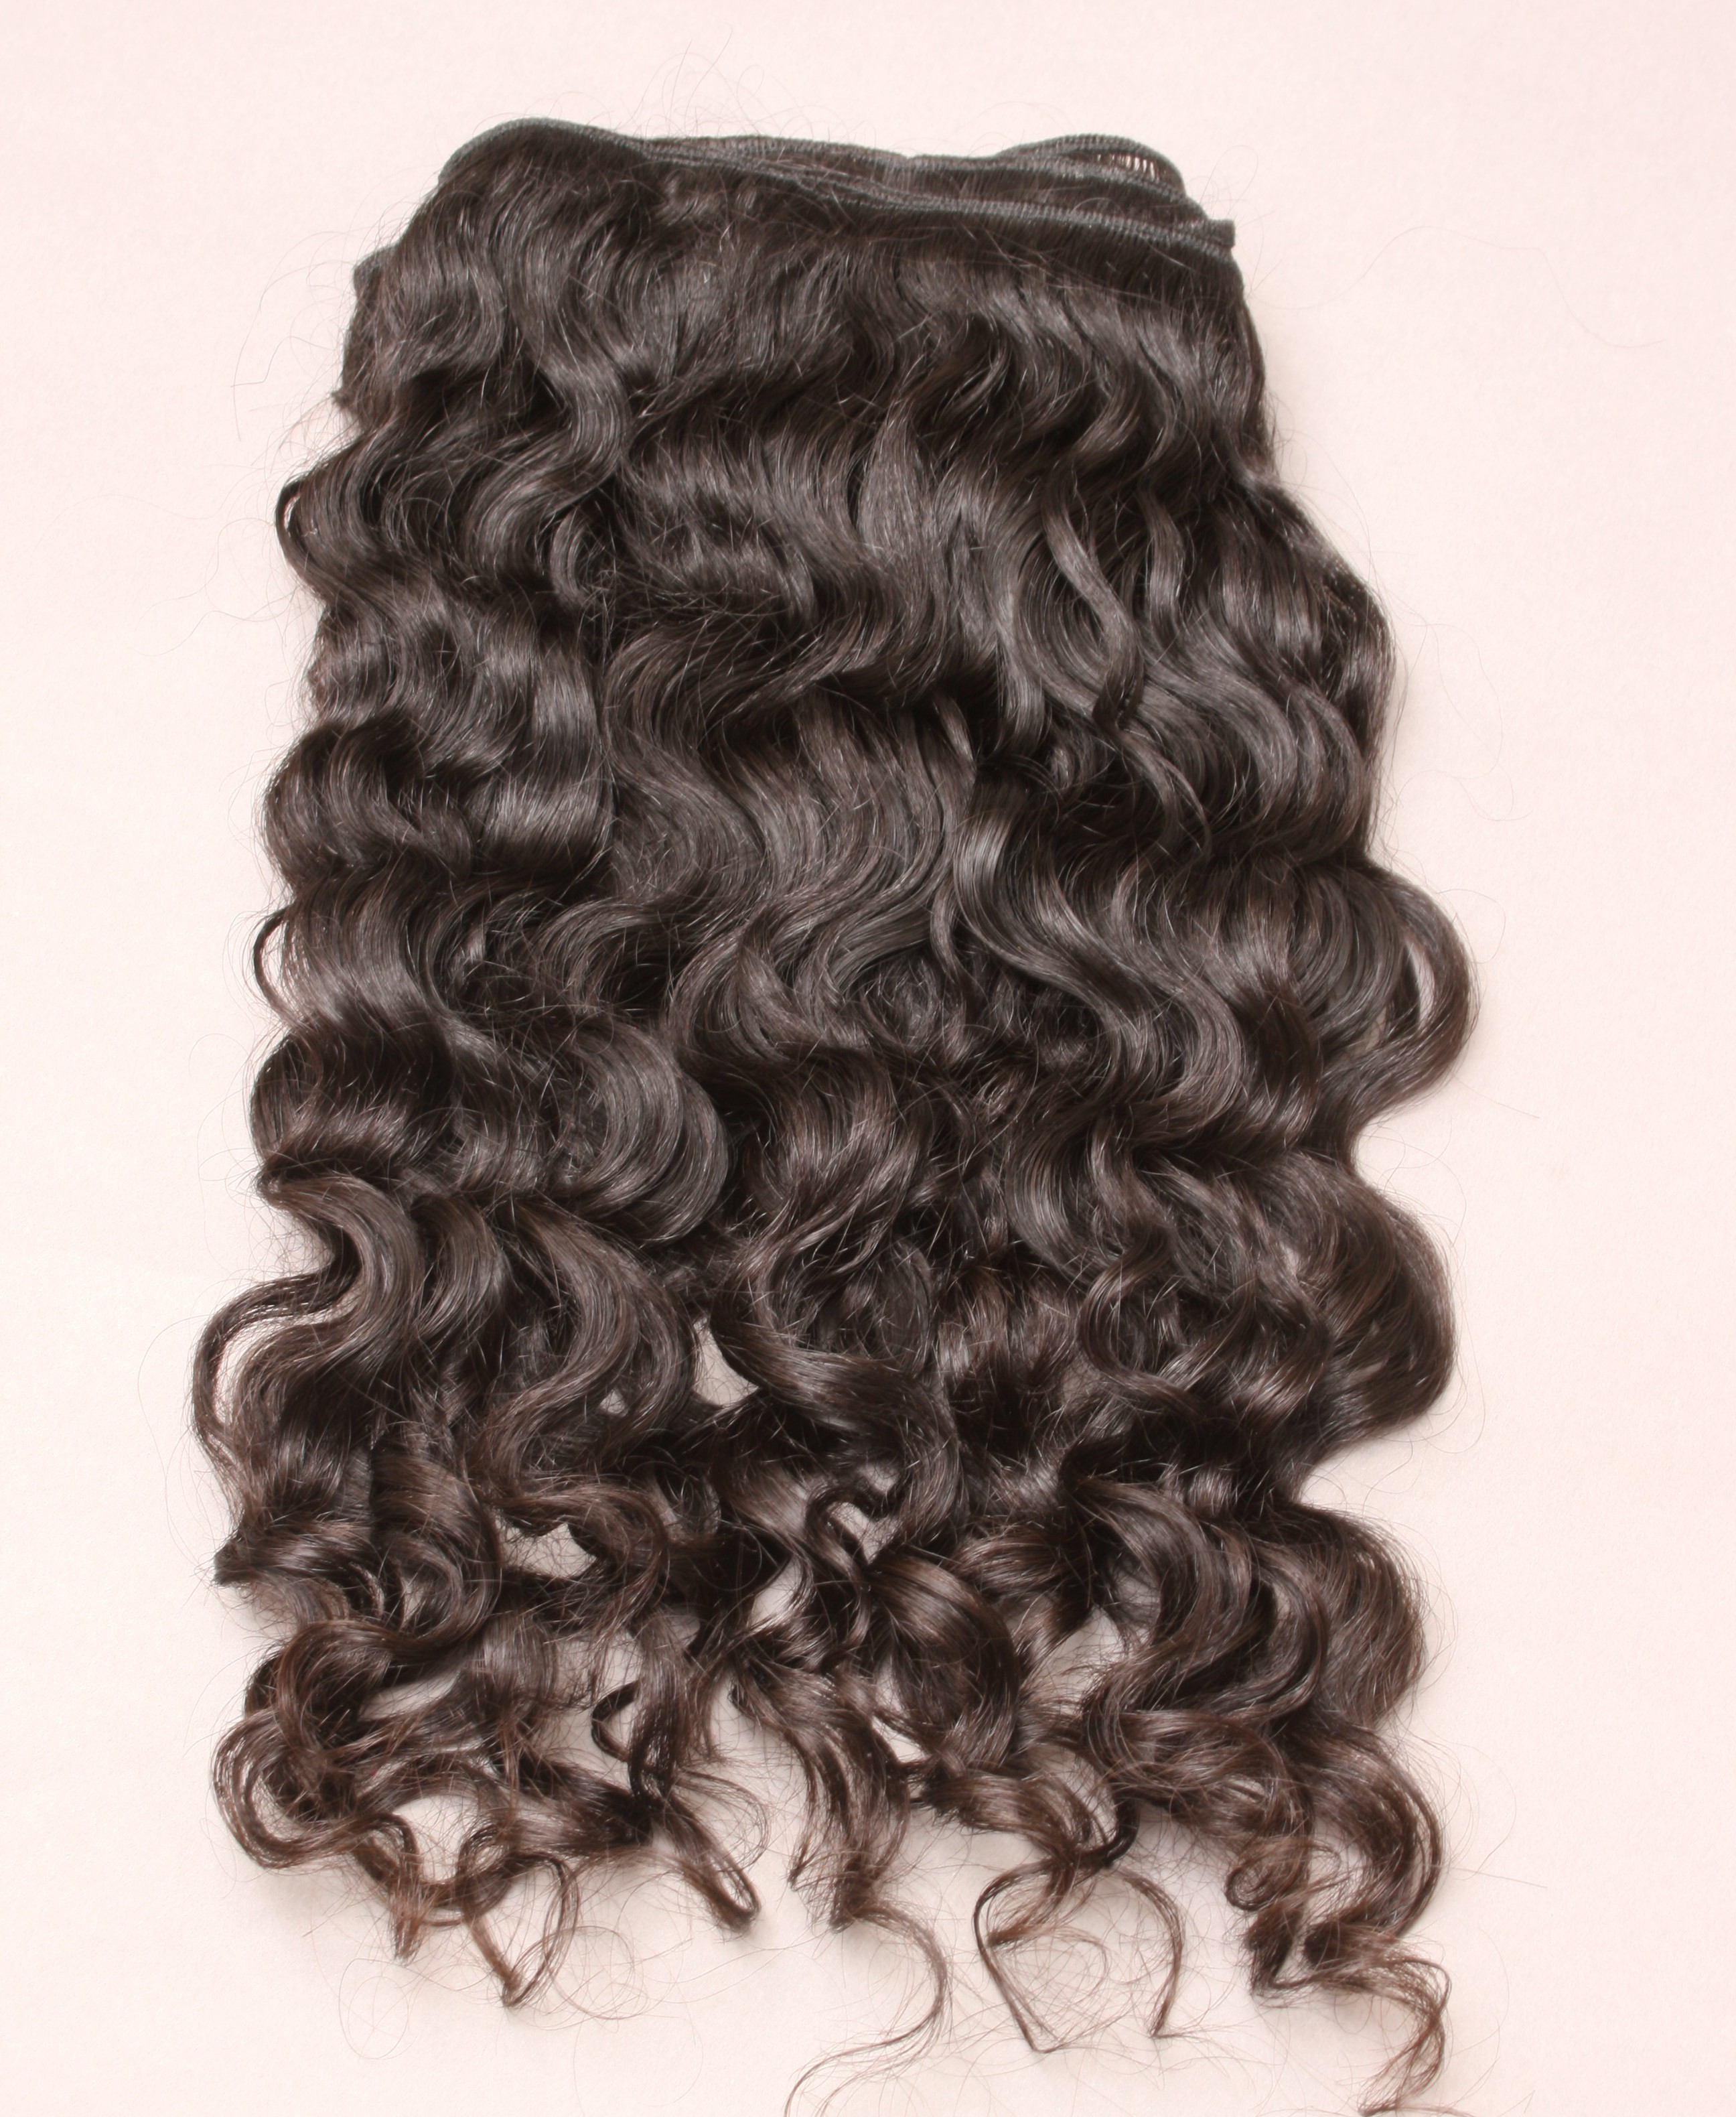 Indian - All Natural Curly Signature Hair